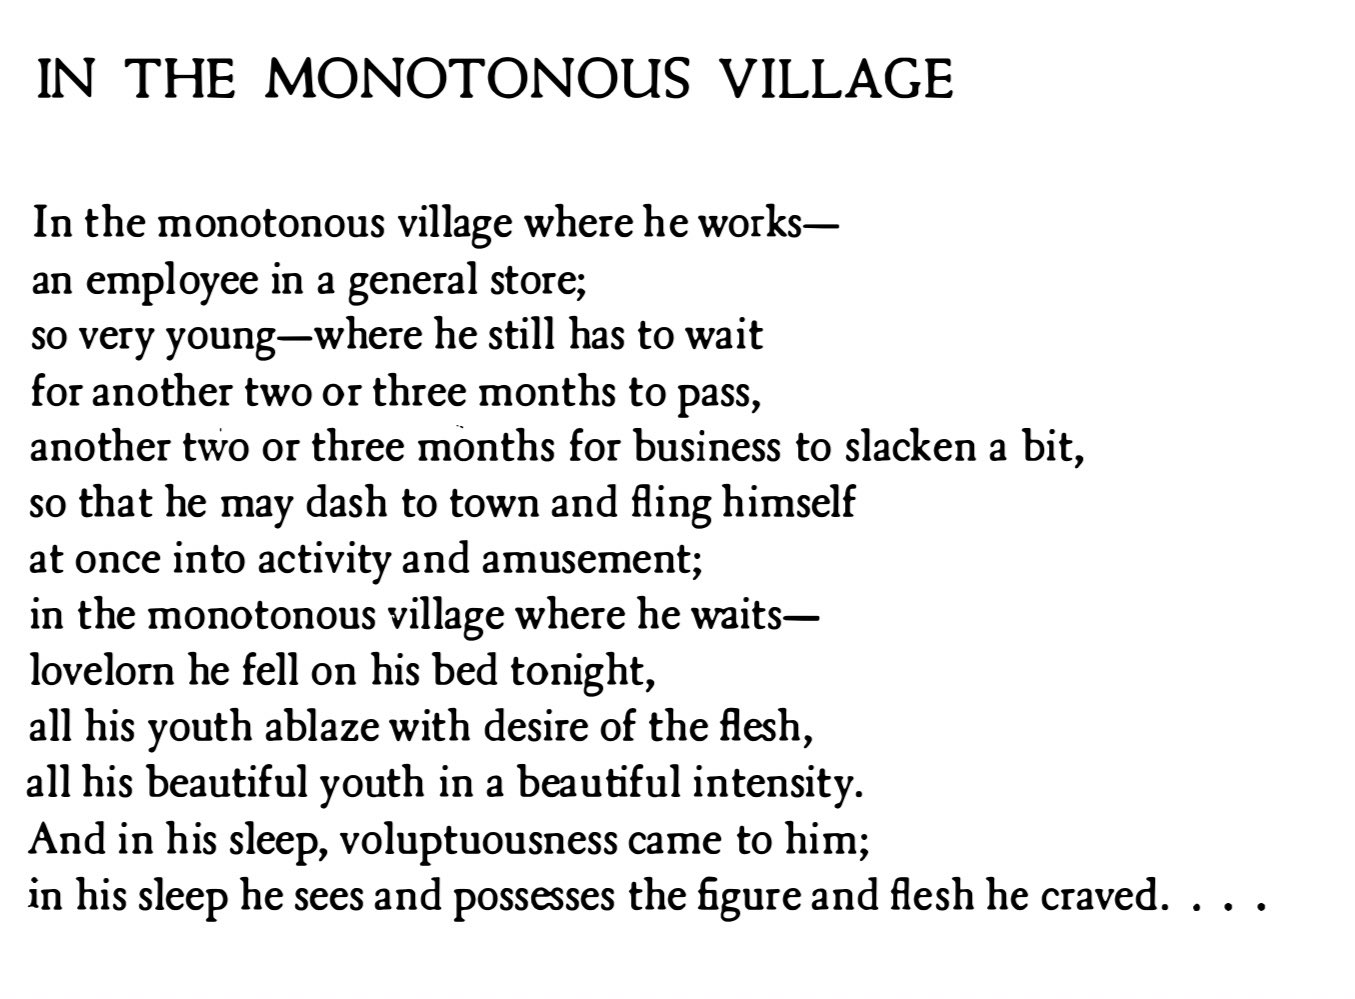 """all his beautiful youth in a beautiful intensity.""  – C.P. Cavafy, ""In the Monotonous Village"", translated by Rae Dalven.  #poetry #cavafy https://t.co/nUyyWTcQyf"